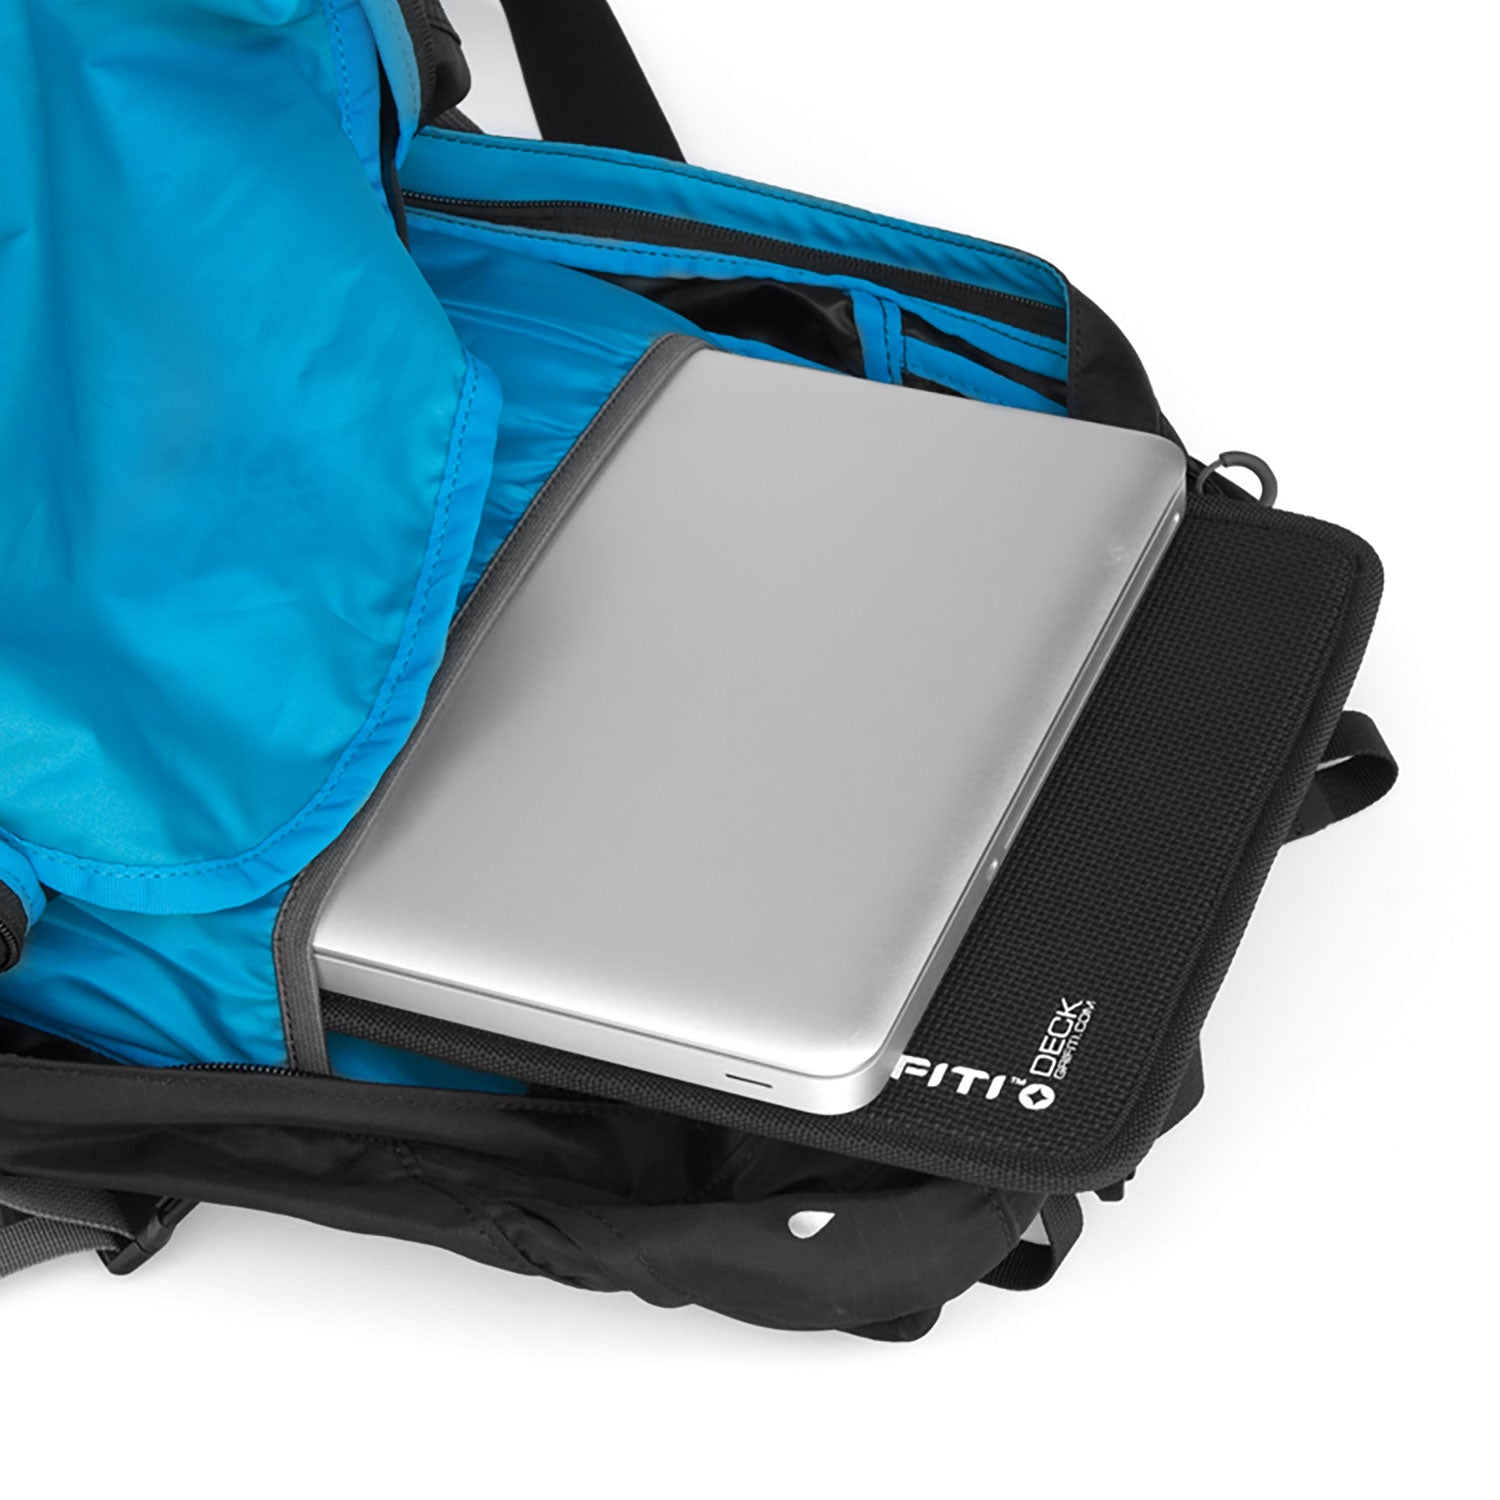 Grifiti Travel Decks MacBook Laptop Lap Desk Fits in Sleeves Backpacks 4 Sizes - Grifiti